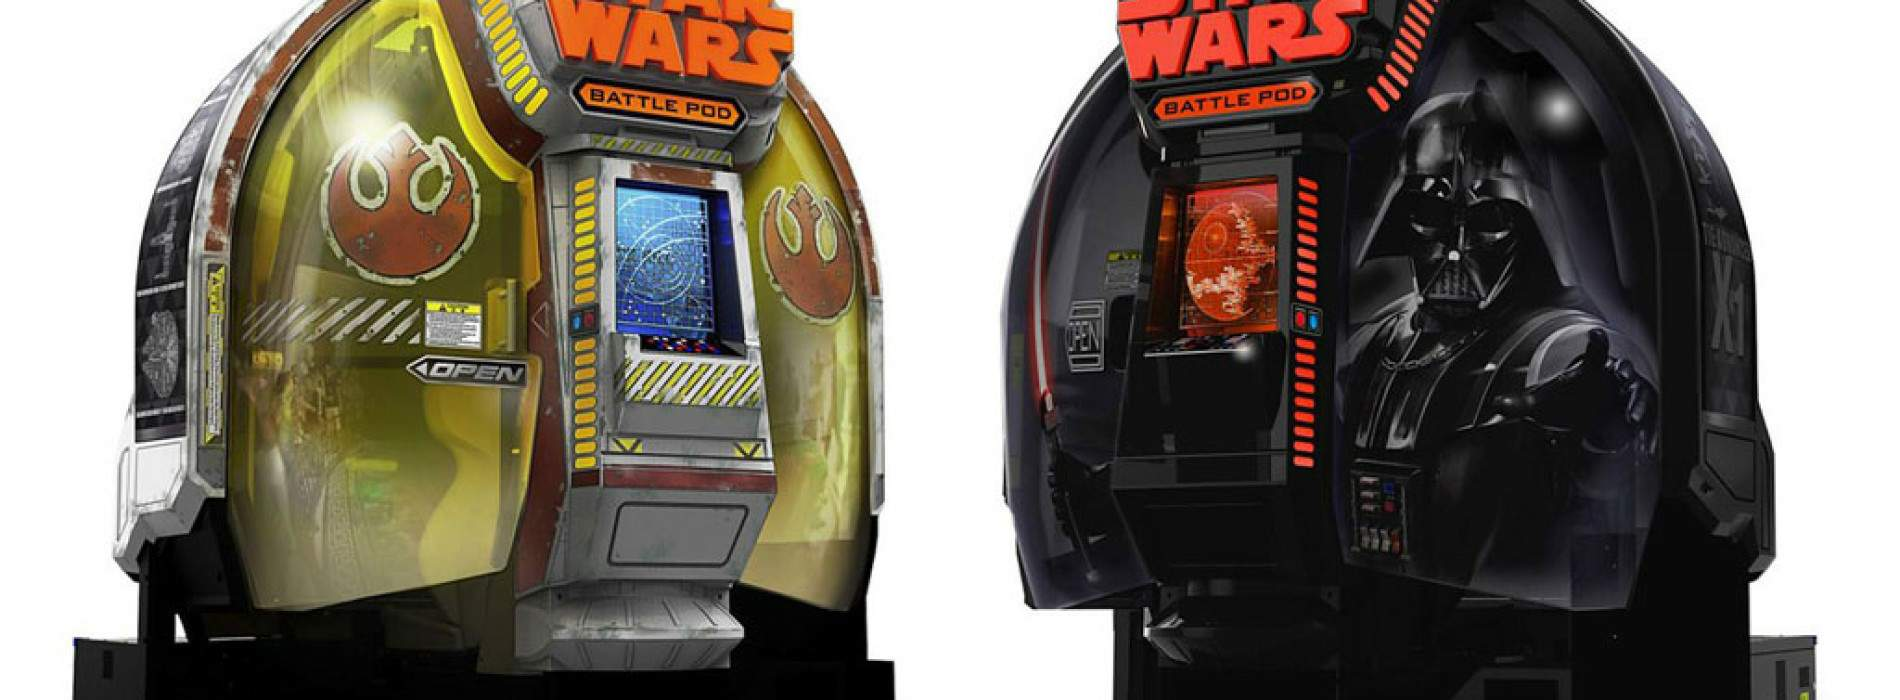 Battle Pod, la máquina recreativa de Star Wars